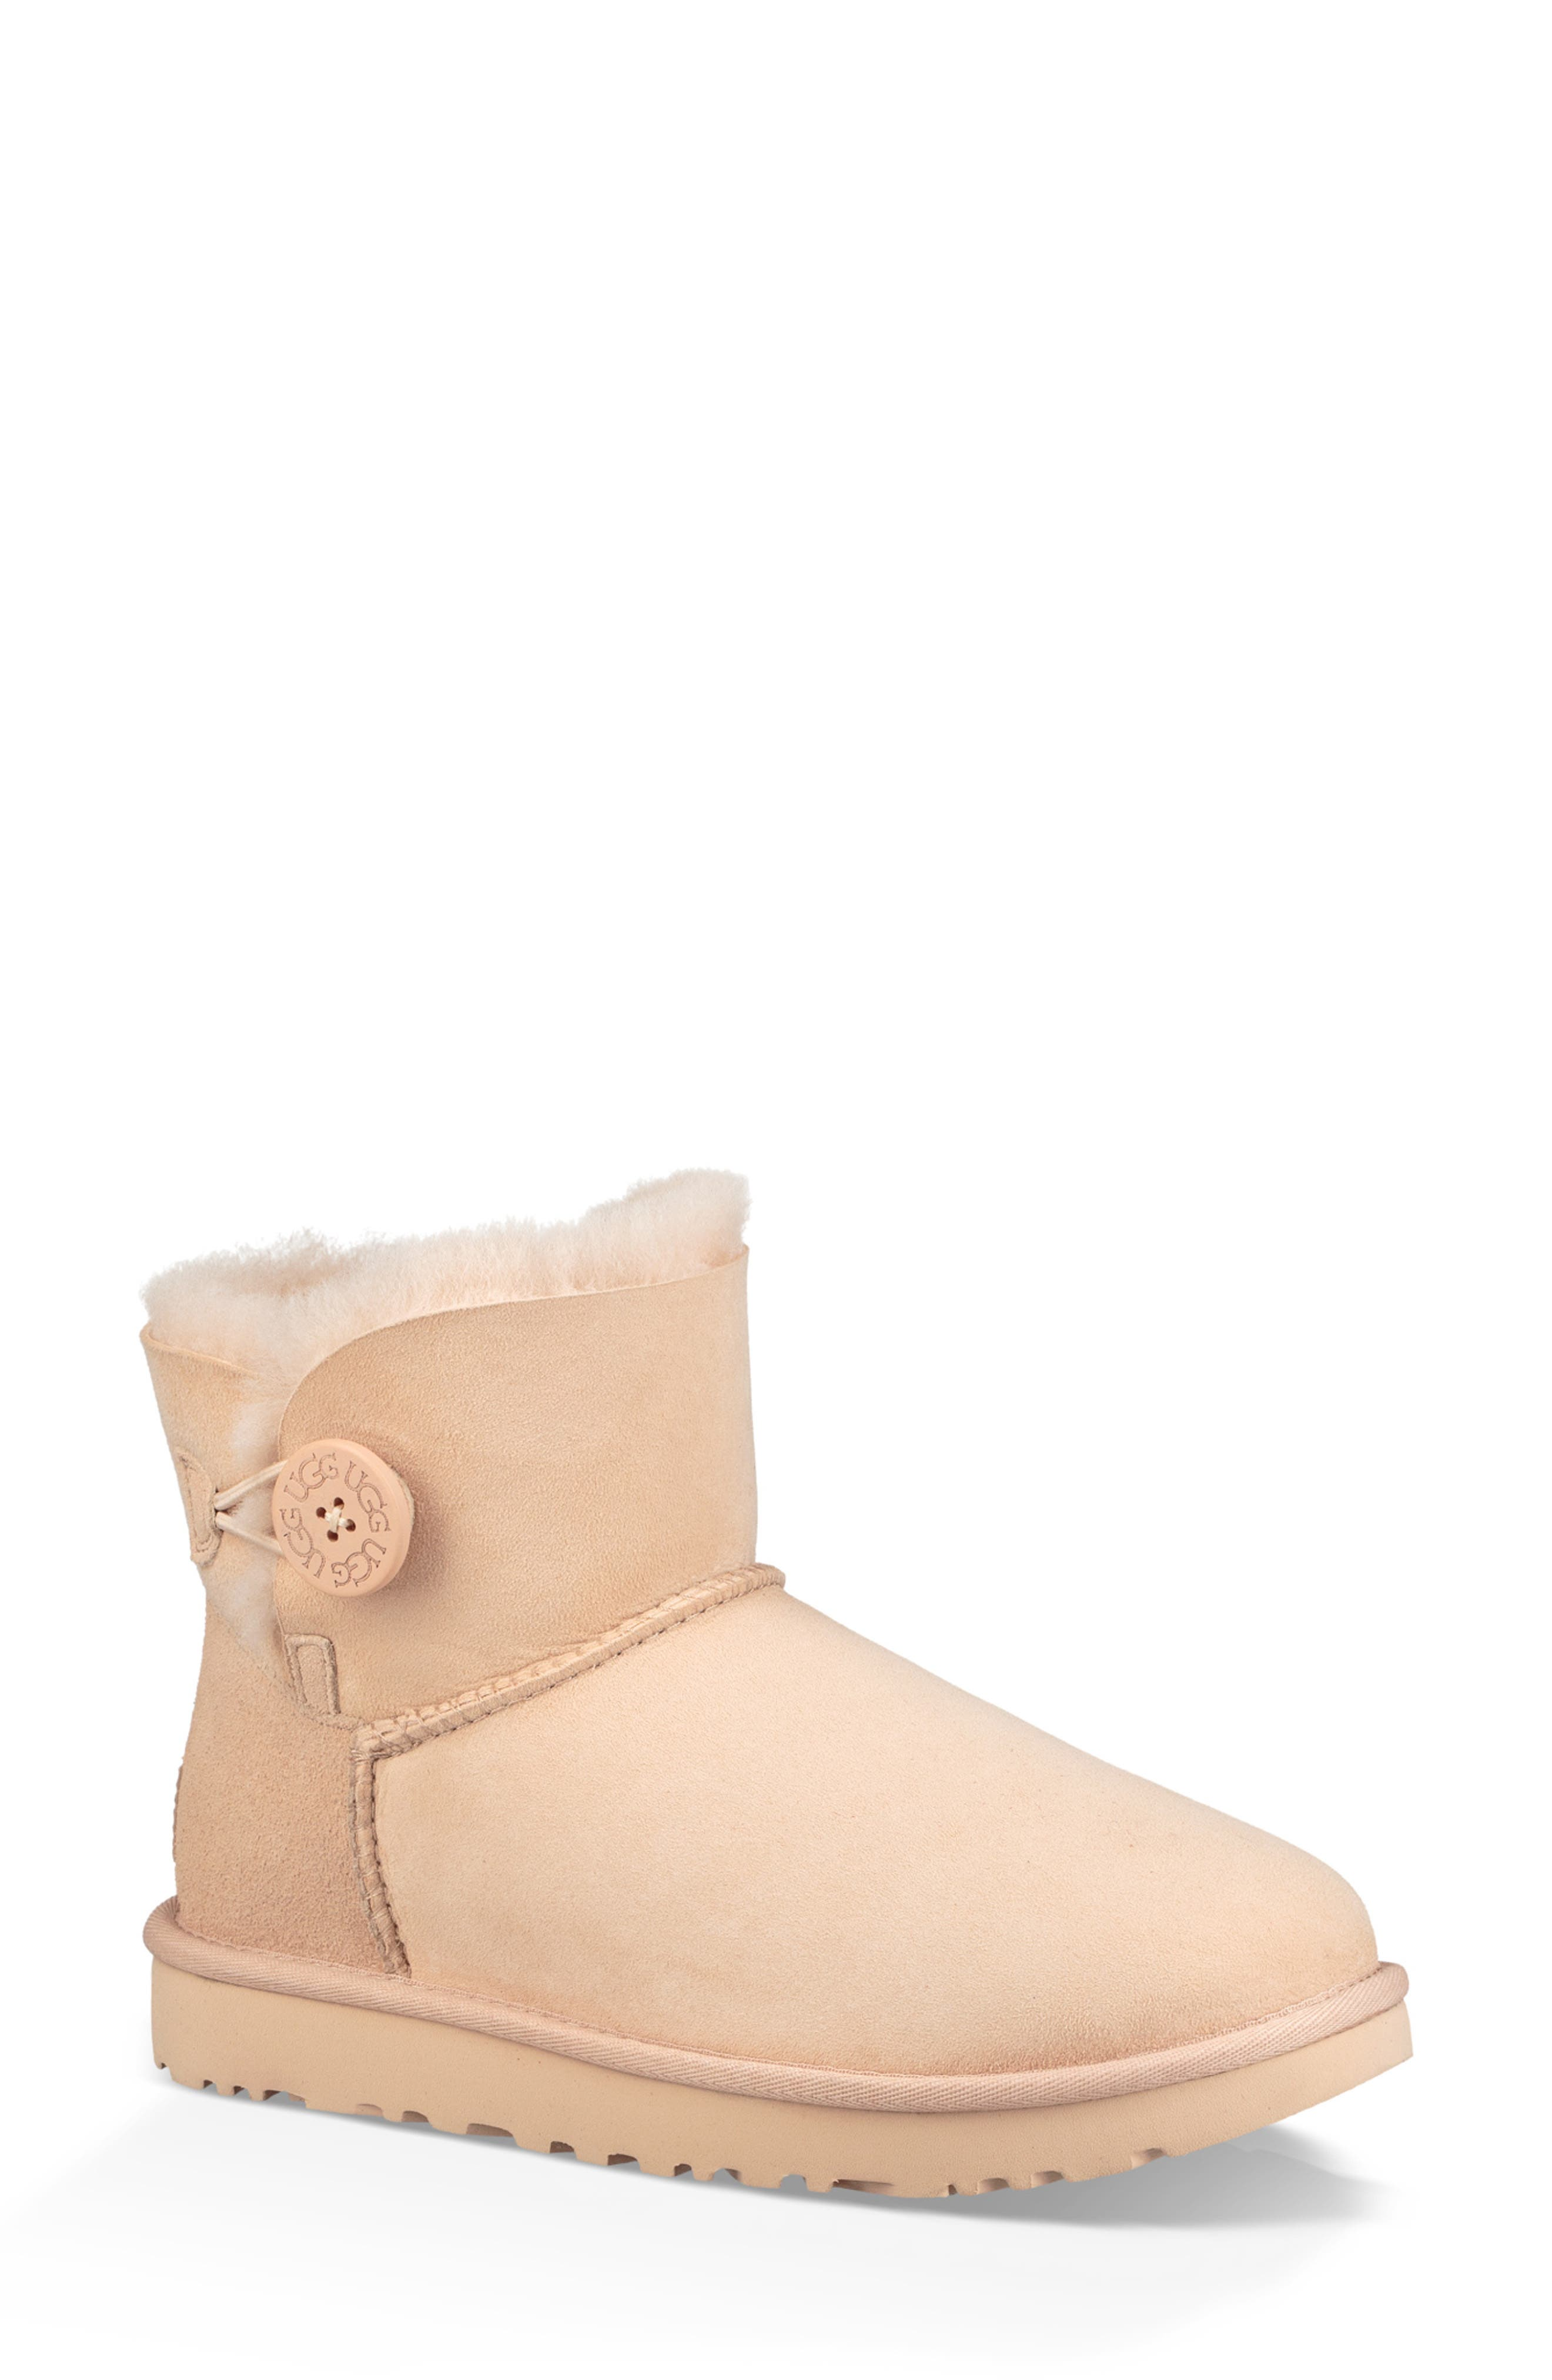 'Mini Bailey Button II' Boot,                         Main,                         color, AMBER LIGHT SUEDE